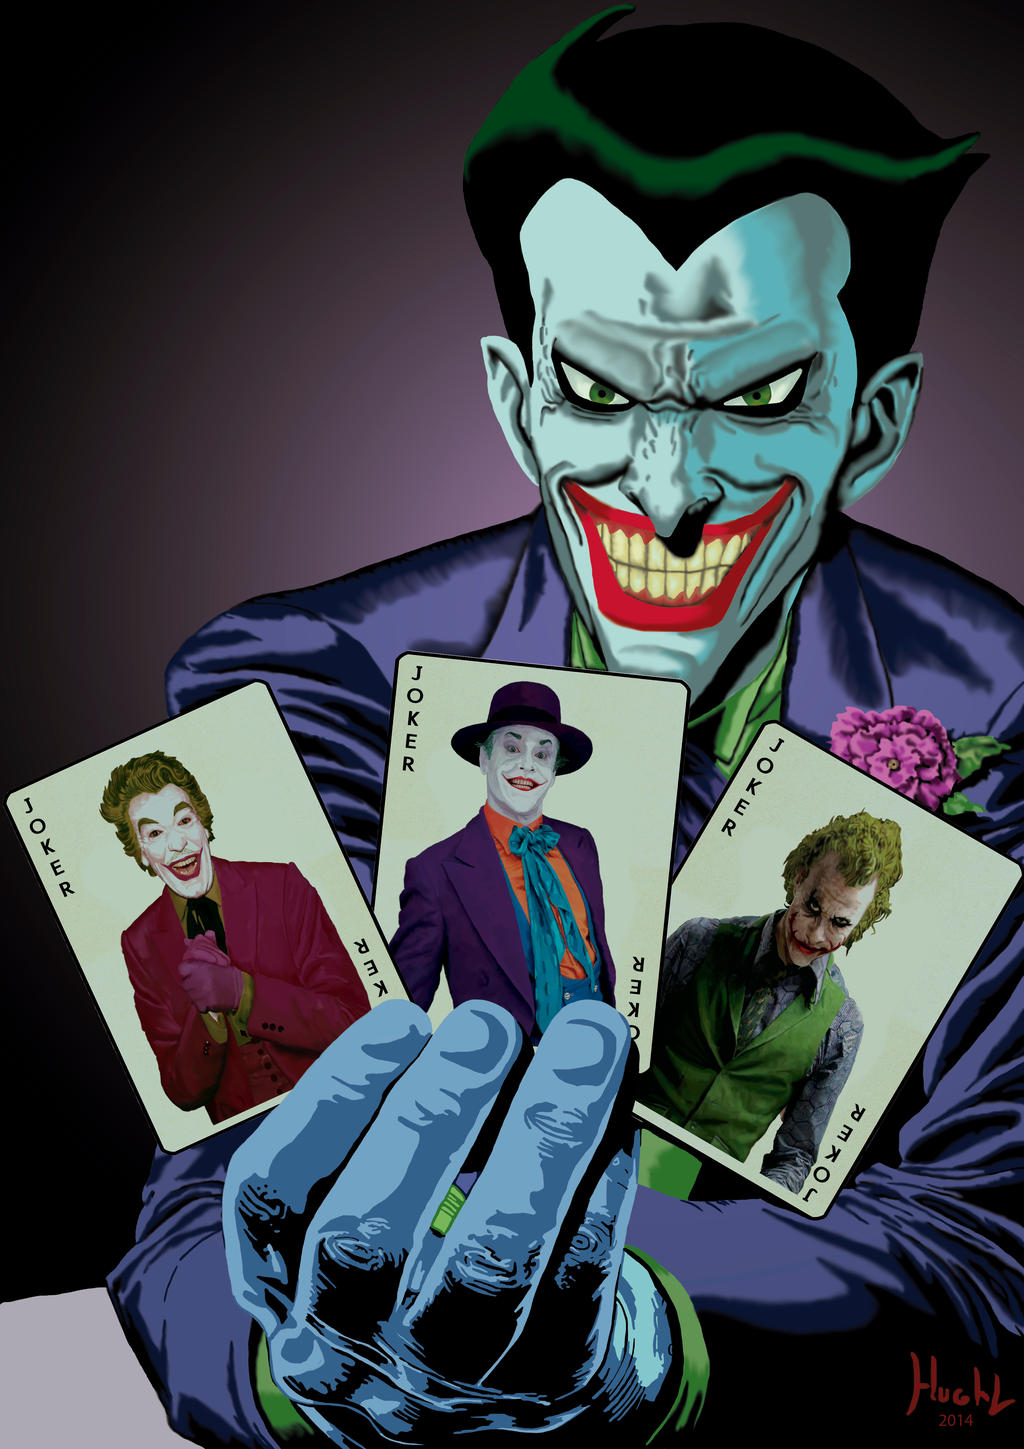 Joker Batman the animated series with cards by Shinnh on DeviantArt